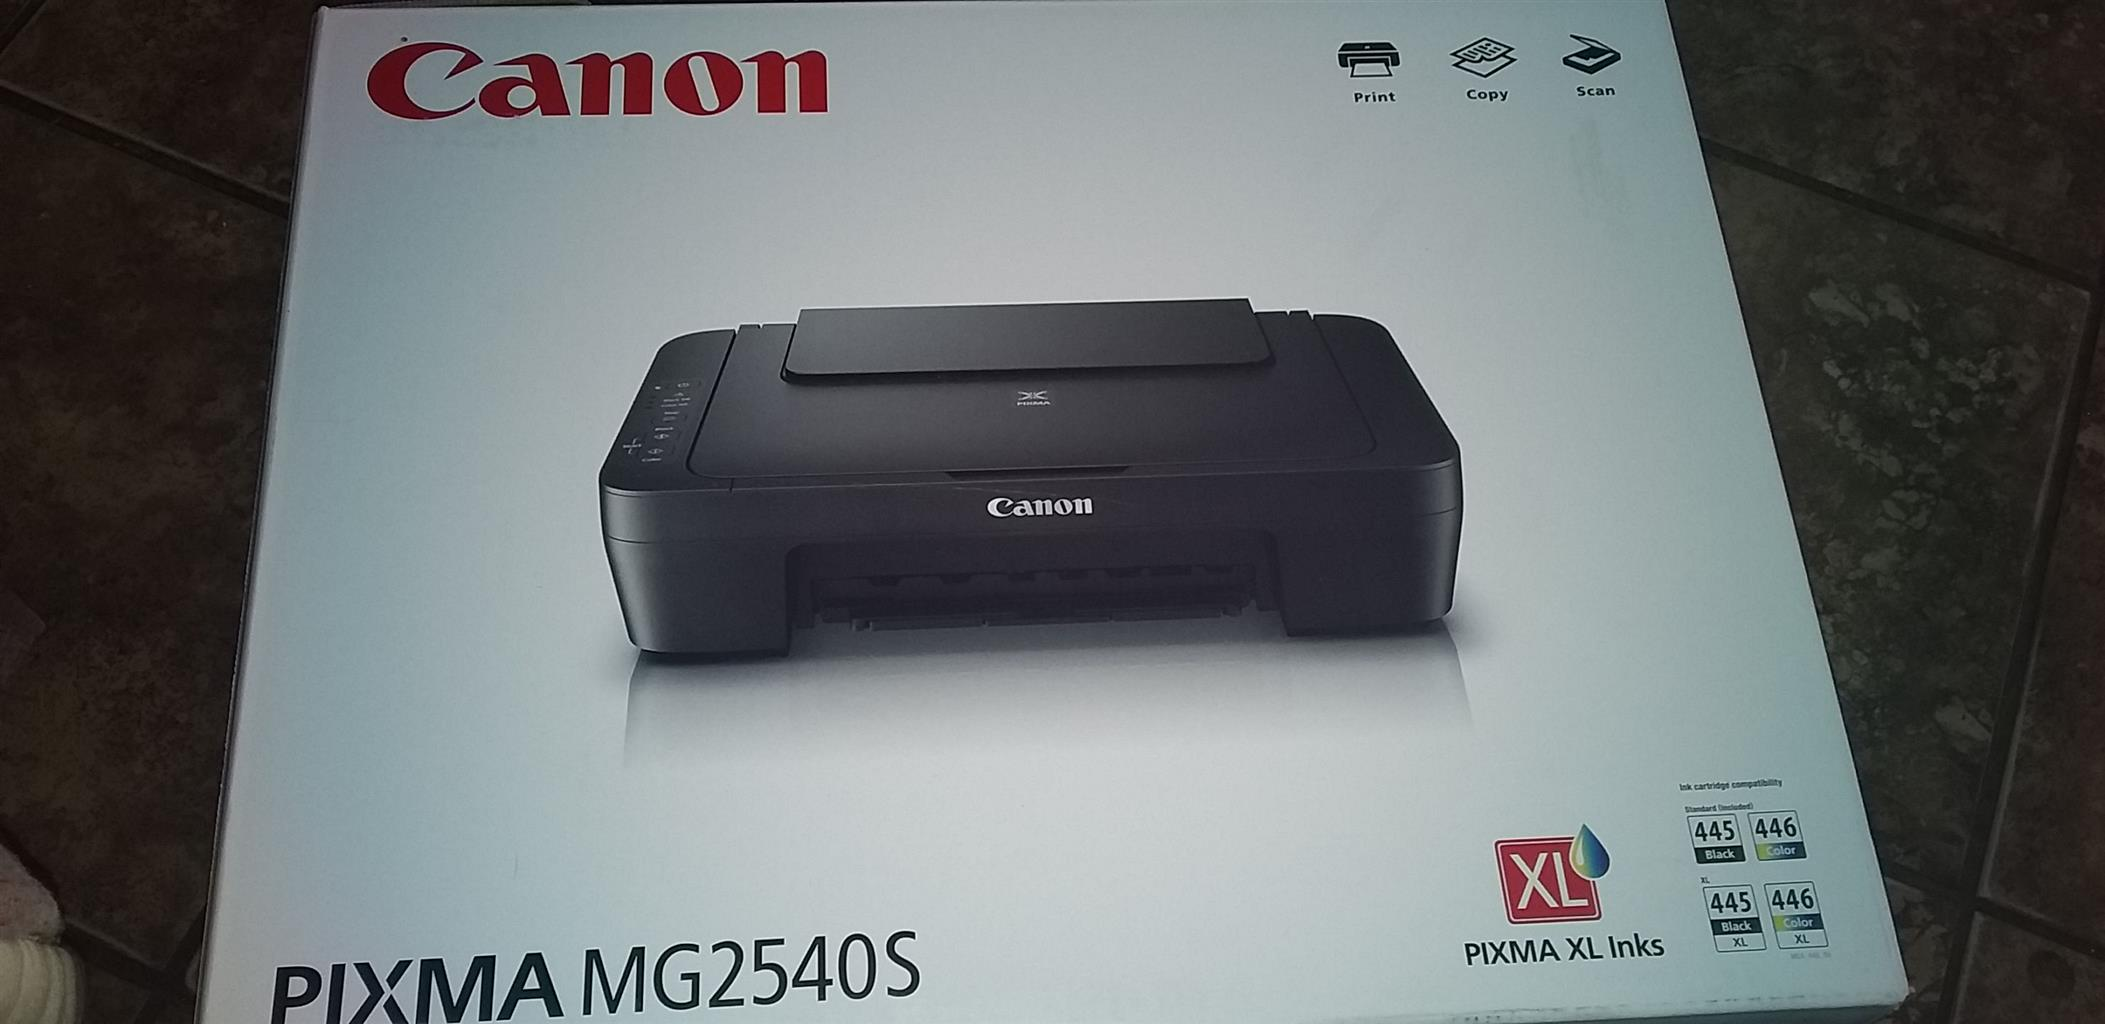 Dixon Notebook and Canon Printer combo